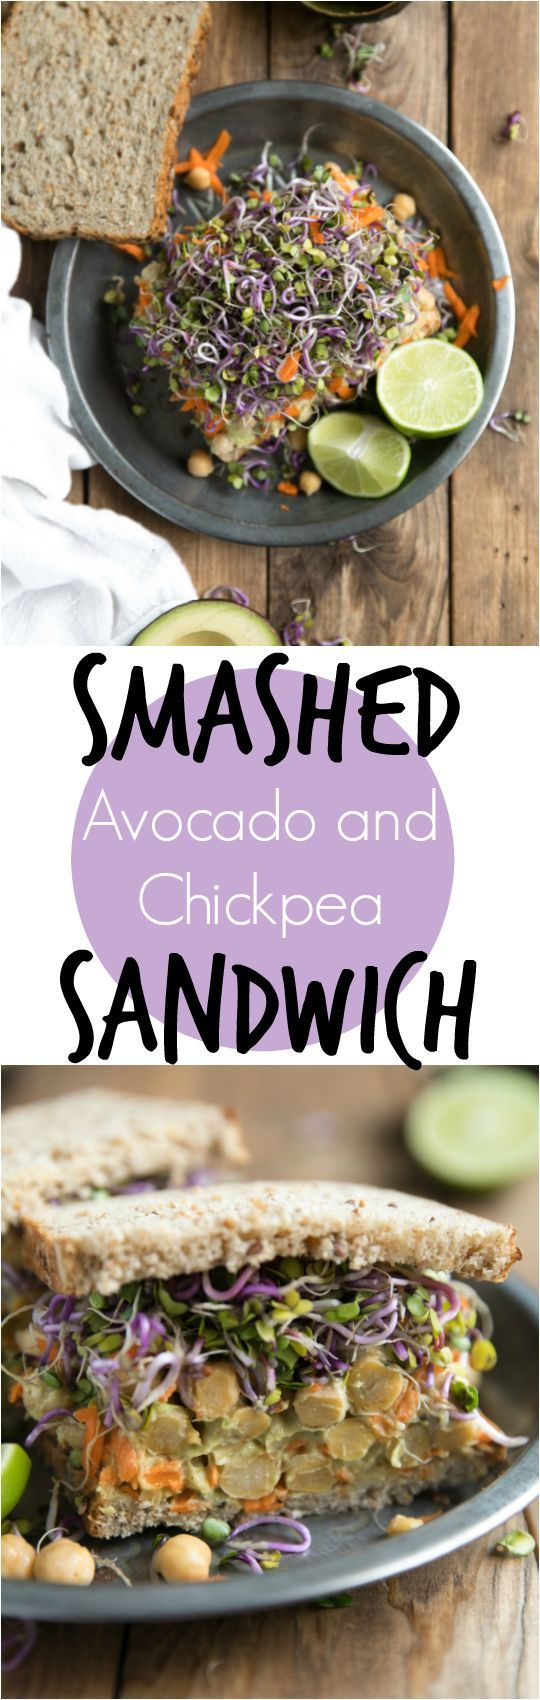 Smashed Avocado and Chickpea Sandwich | Vegetarian #healthy #lunch #recipe #sandwich #avocado #vegetarian